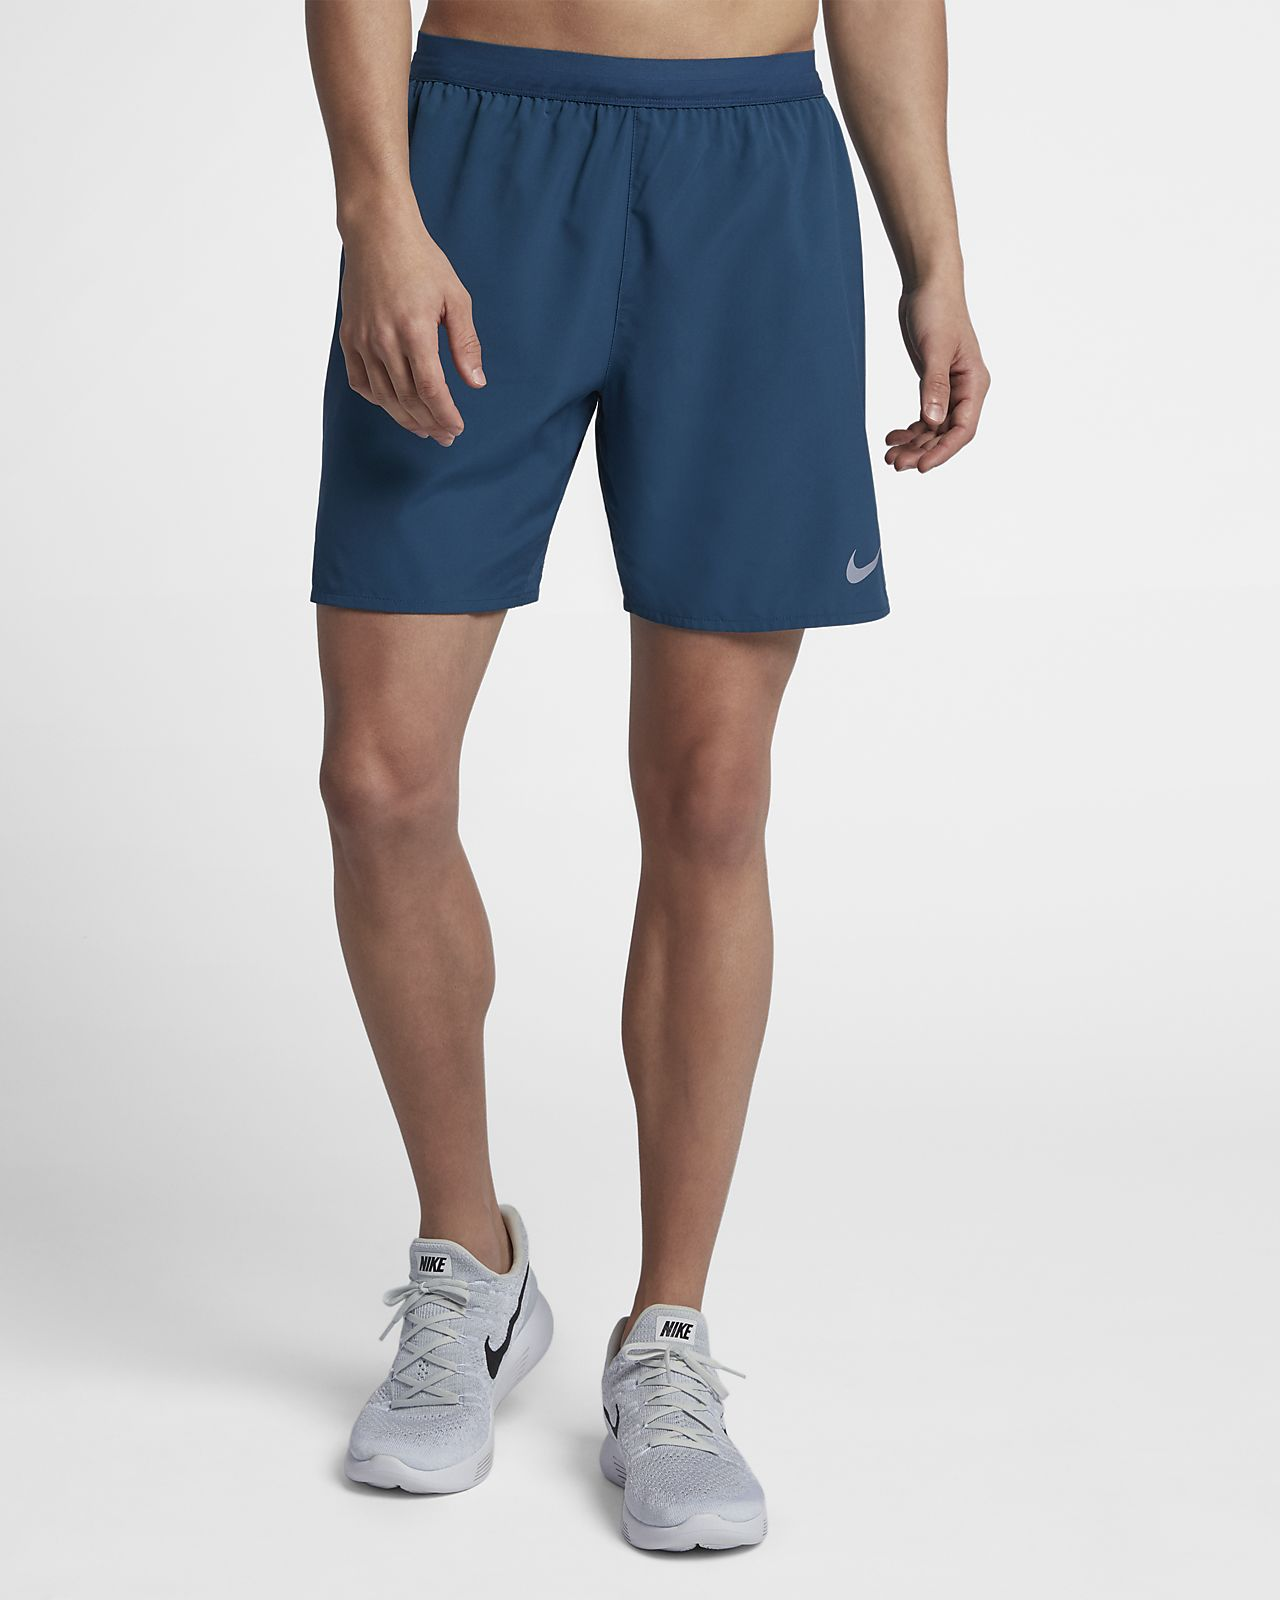 Lined Running Shorts Nike Distance Men's 7\